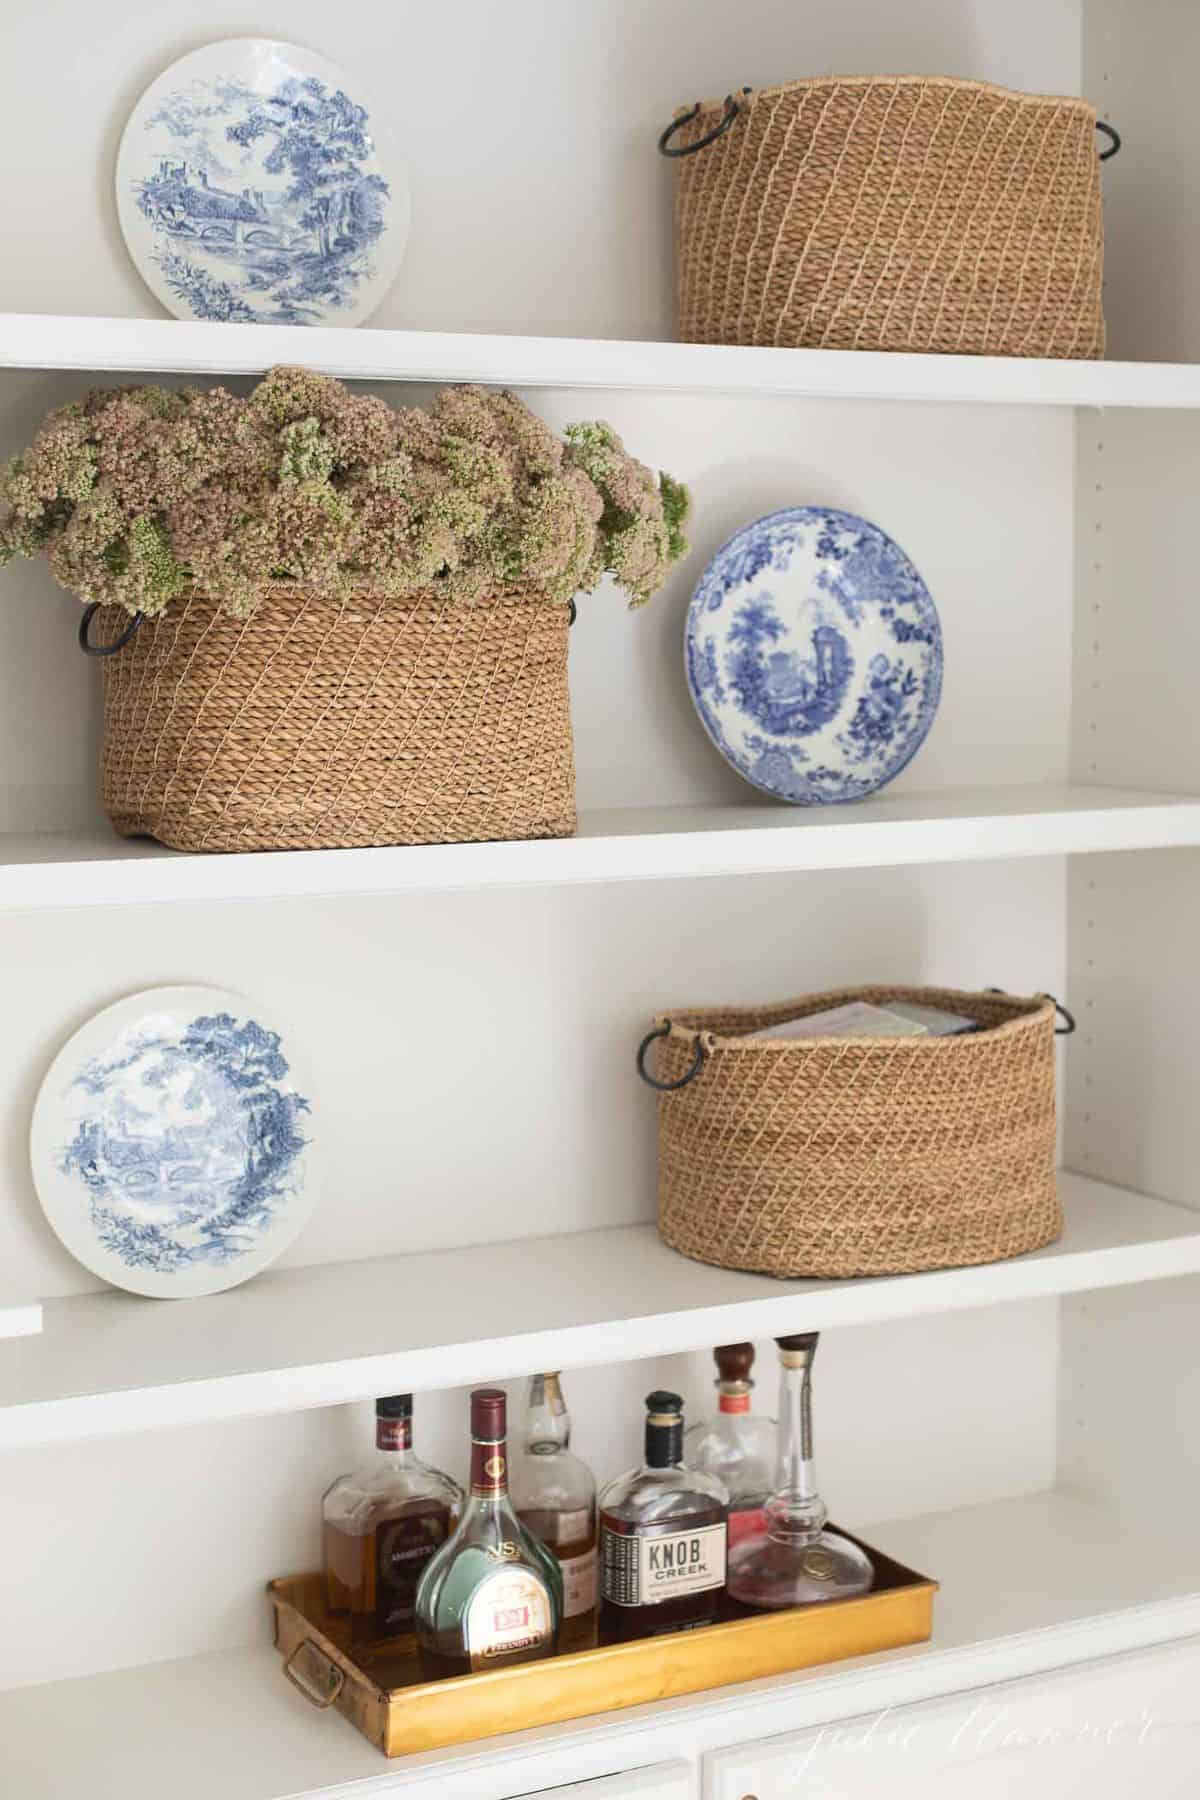 Built in book shelves with a tray of liquor, basket of flowers and blue and white plates. #falllivingroom